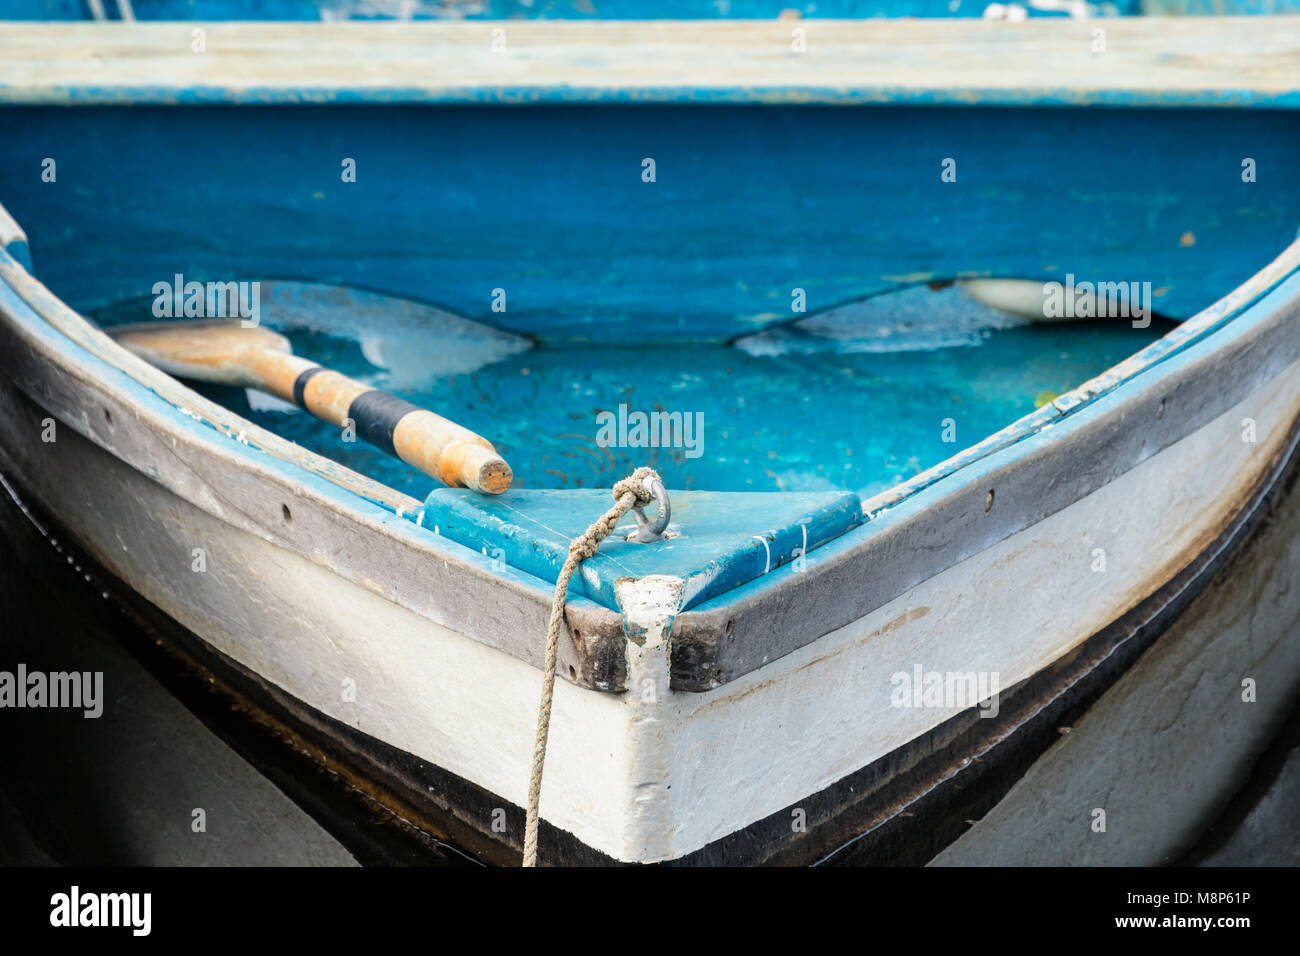 Wooden Row Boats in Perkins Cove, Ogunquit, Maine - Stock Image